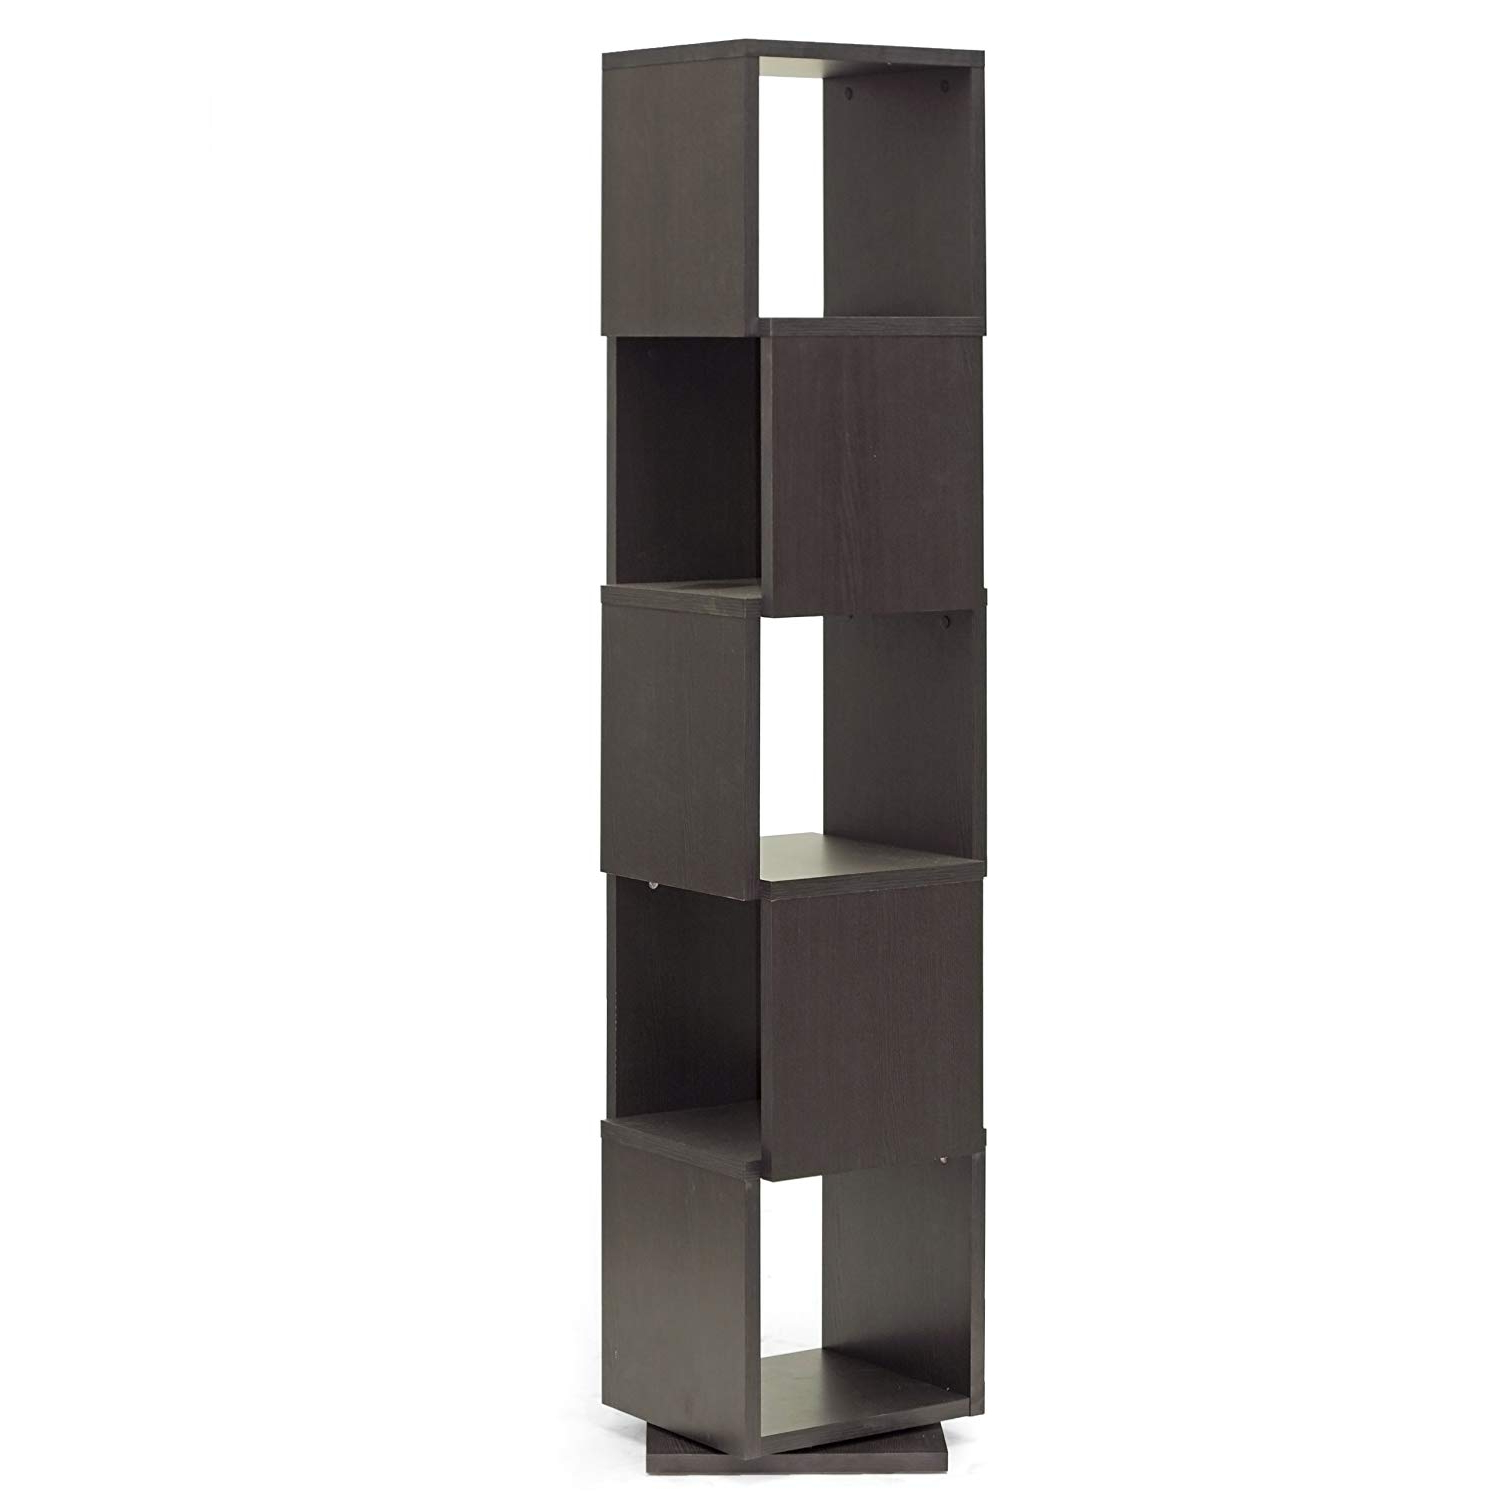 Baxton Studio Ogden 5 Level Rotating Modern Bookshelf, Dark Brown Inside Well Liked Ogden Corner Unit Bookcases (Gallery 9 of 20)